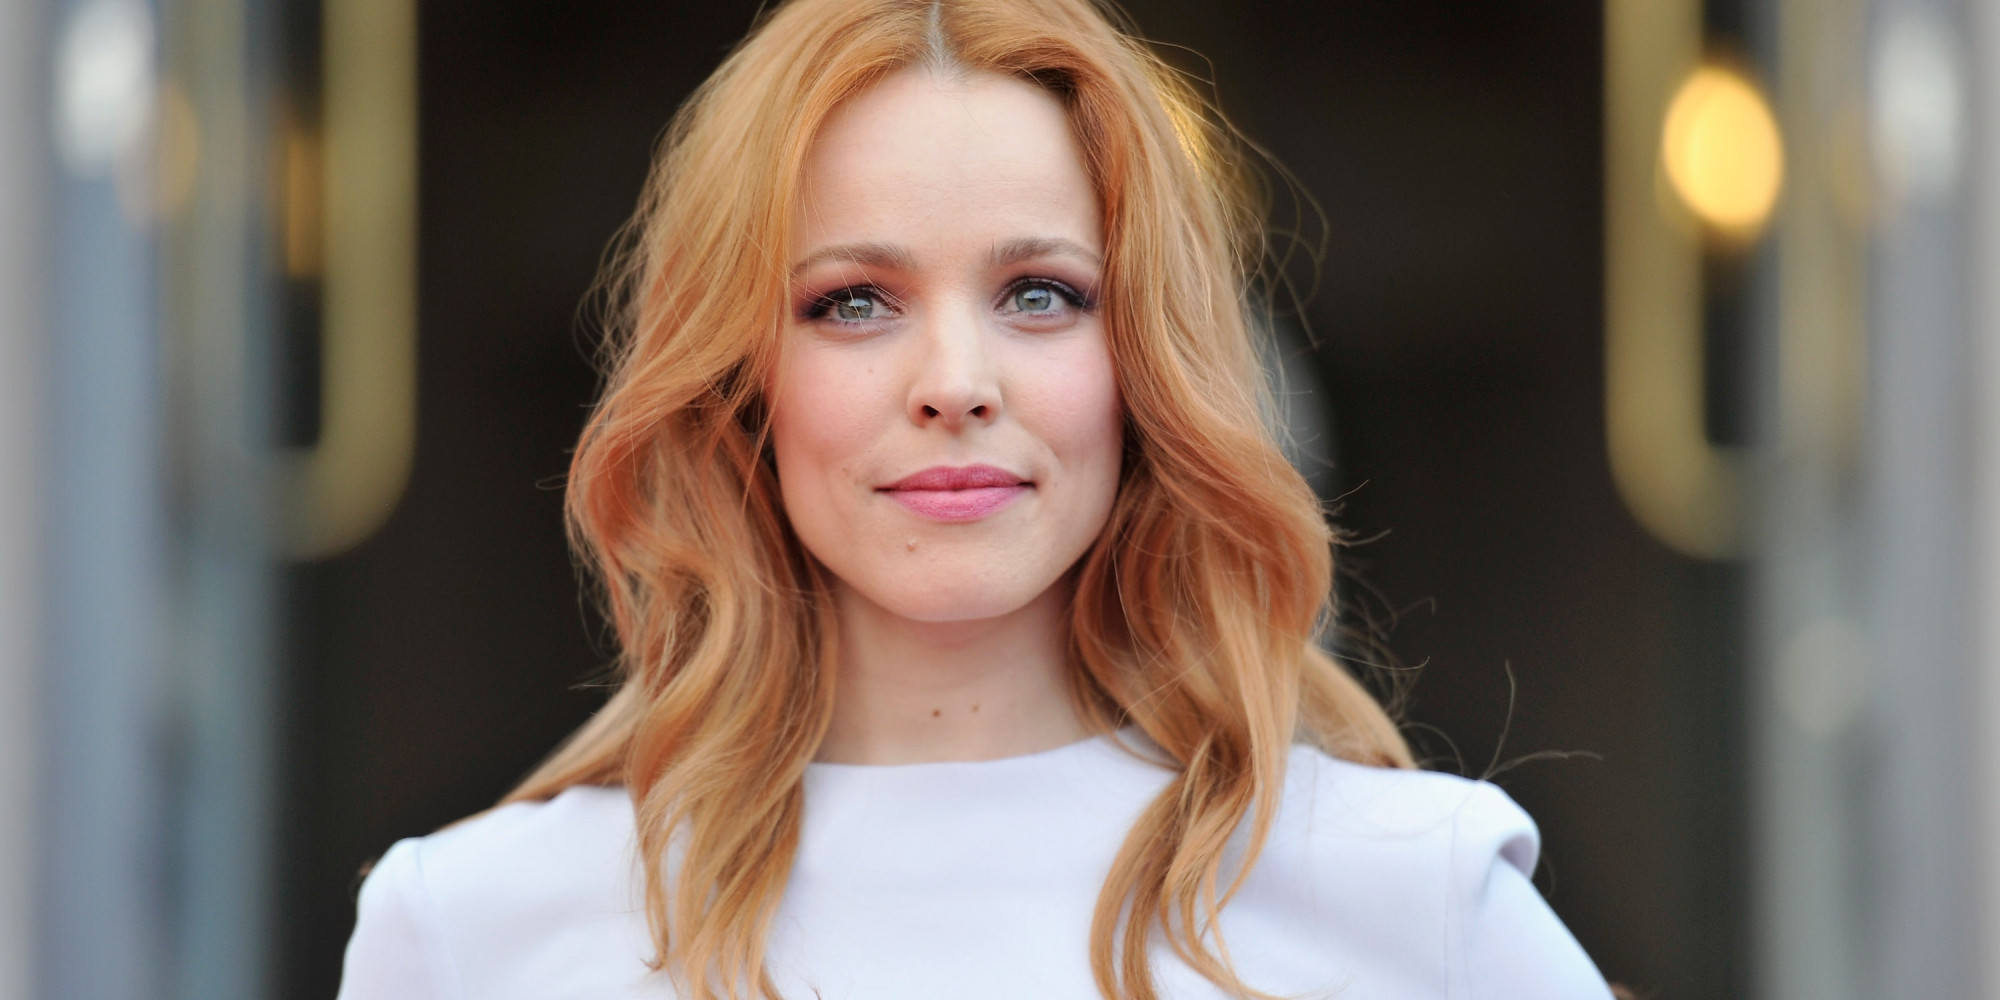 Rachel McAdams Wears No Makeup For Allure, Looks Gorgeous